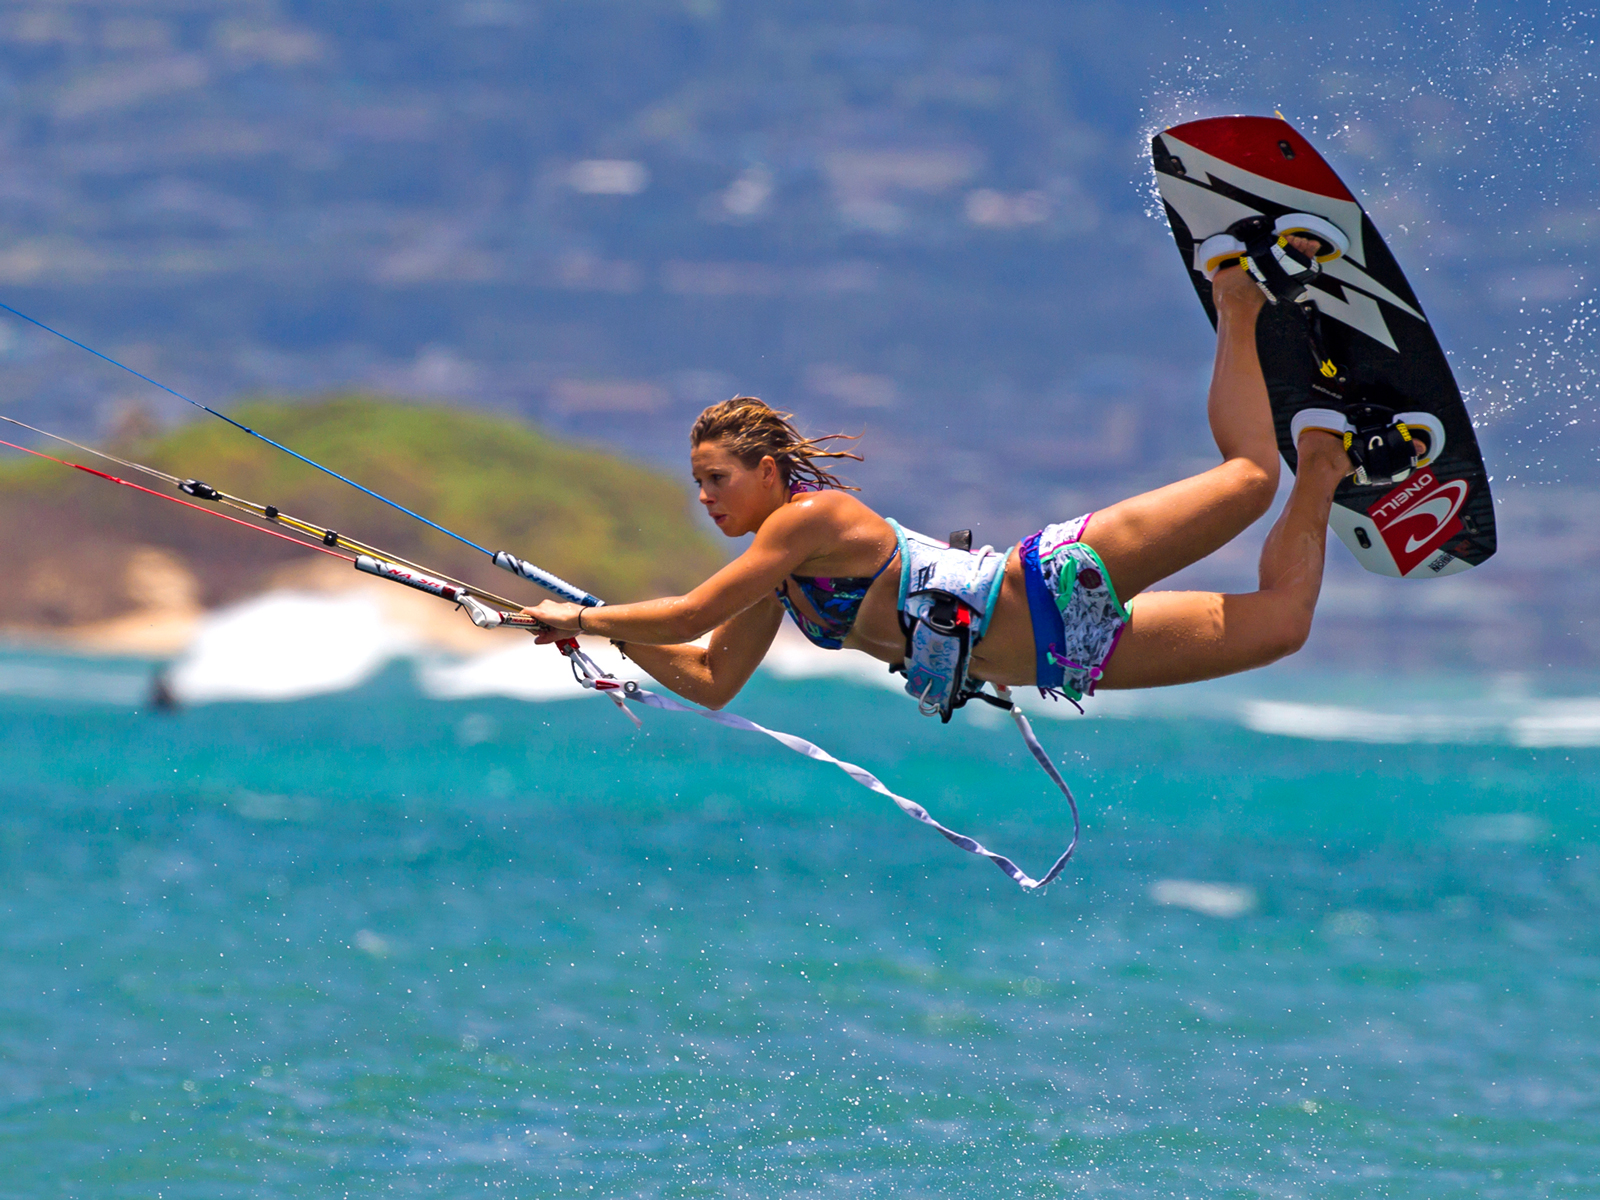 kitesurf wallpaper image - Jalou Langeree popping a raily - in resolution: Standard 4:3 1600 X 1200